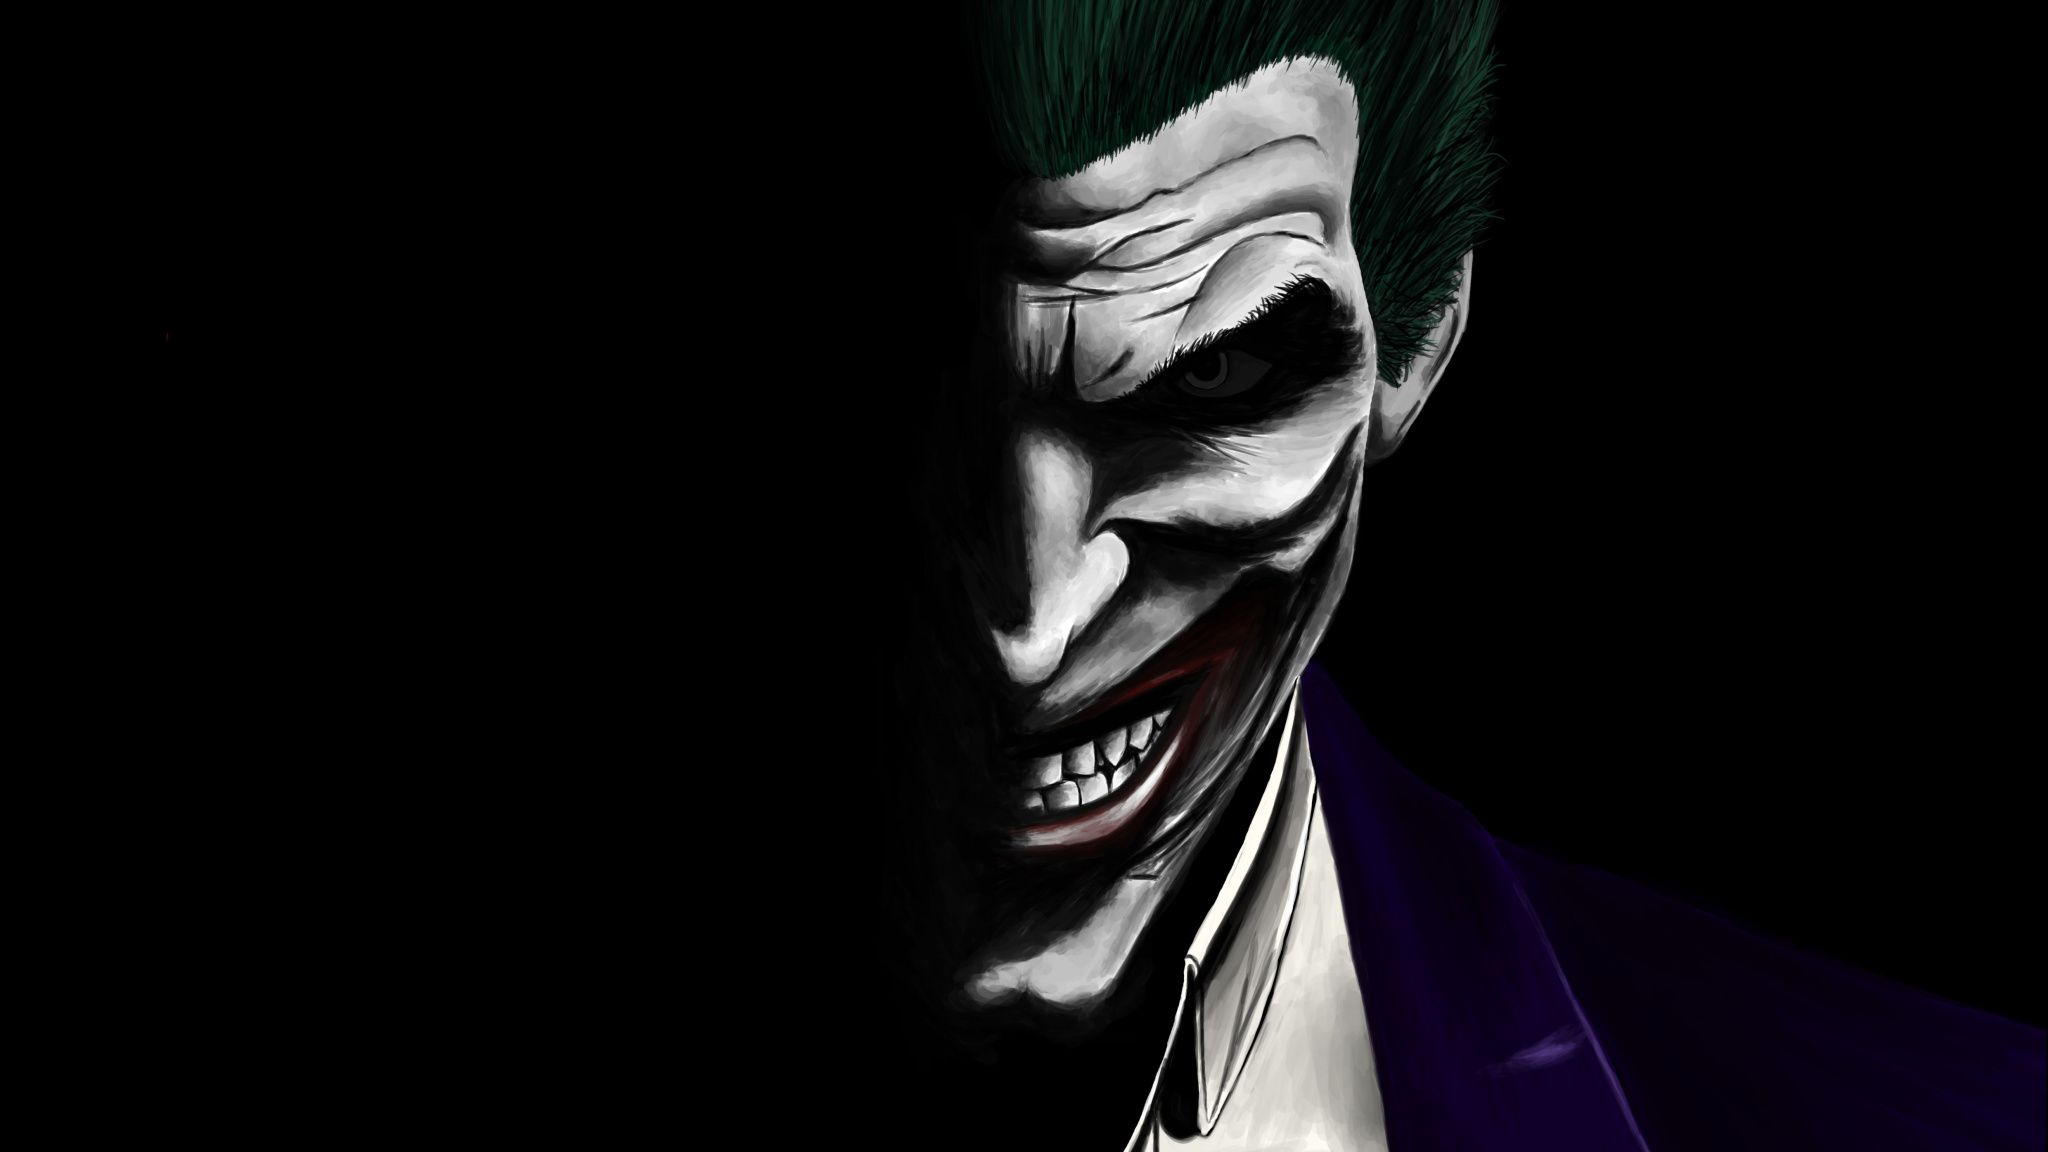 Joker Dual Screen Wallpapers Top Free Joker Dual Screen